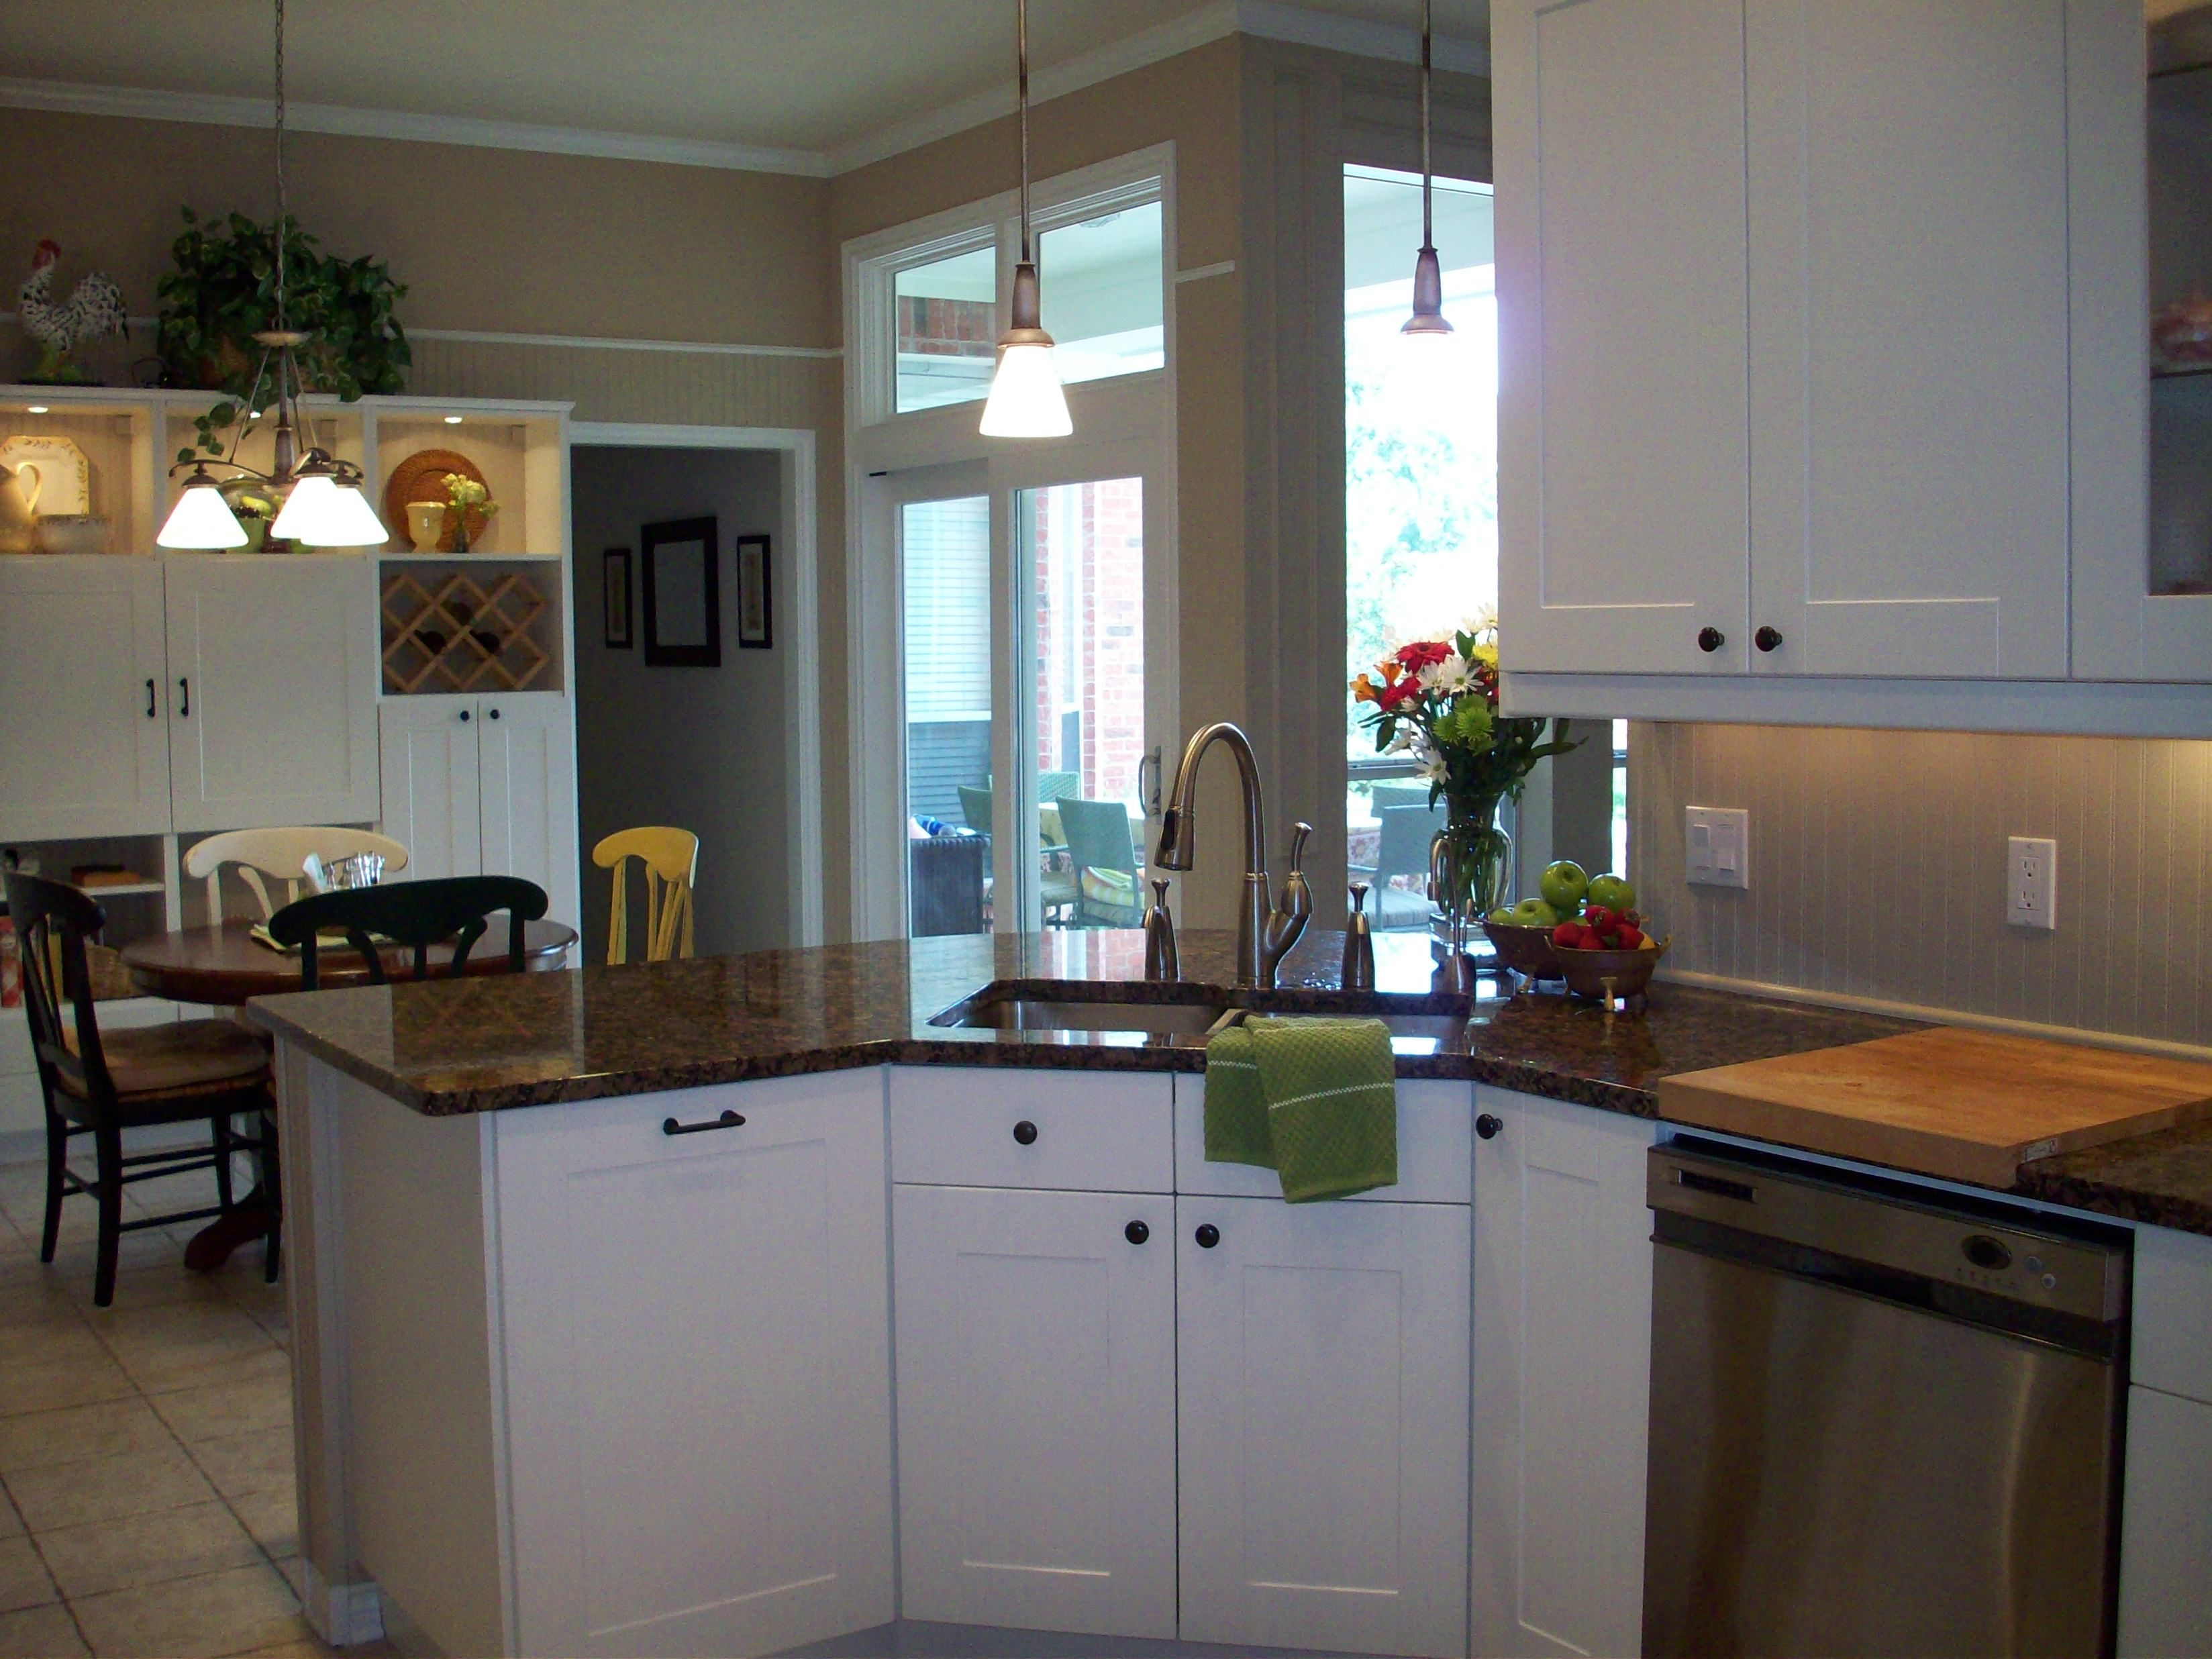 Corner base kitchen cabinet  We used a standard  in sink base but install on an angle for the